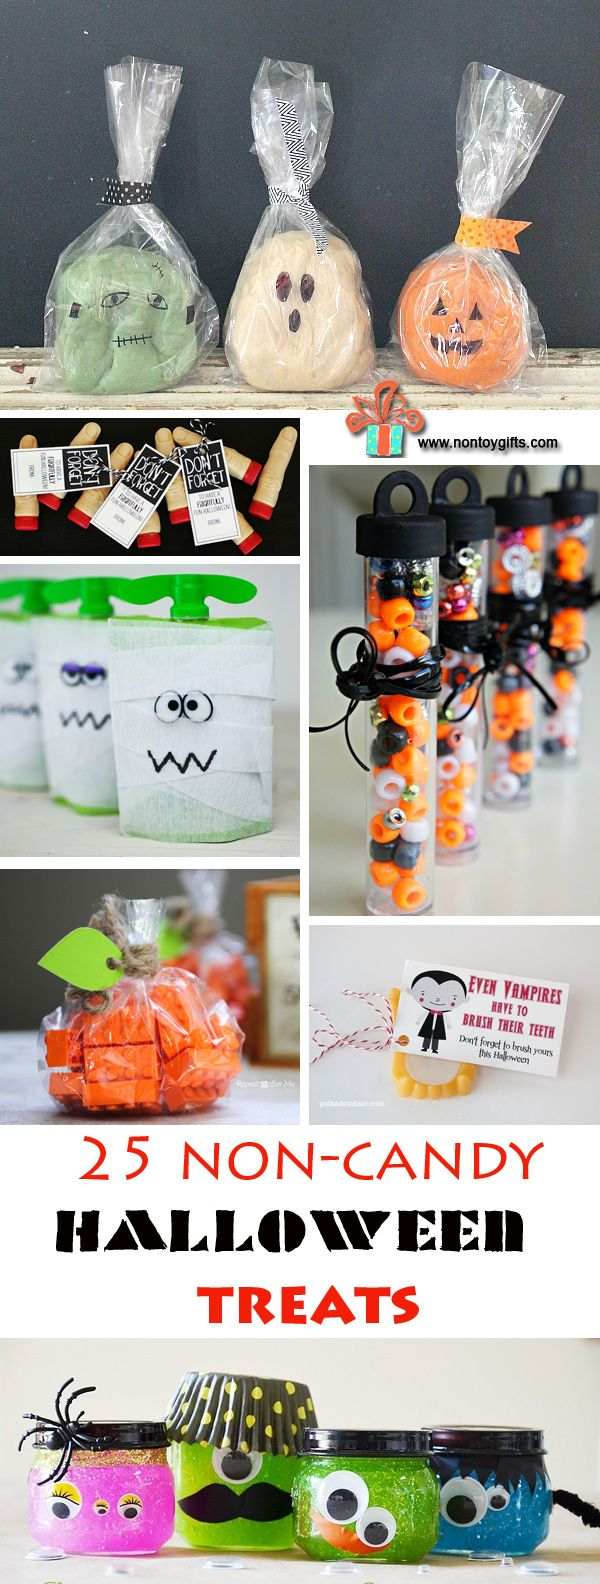 25 Non-Candy Halloween Treats to make - at Non Toy Gifts #noncandy #Halloween…